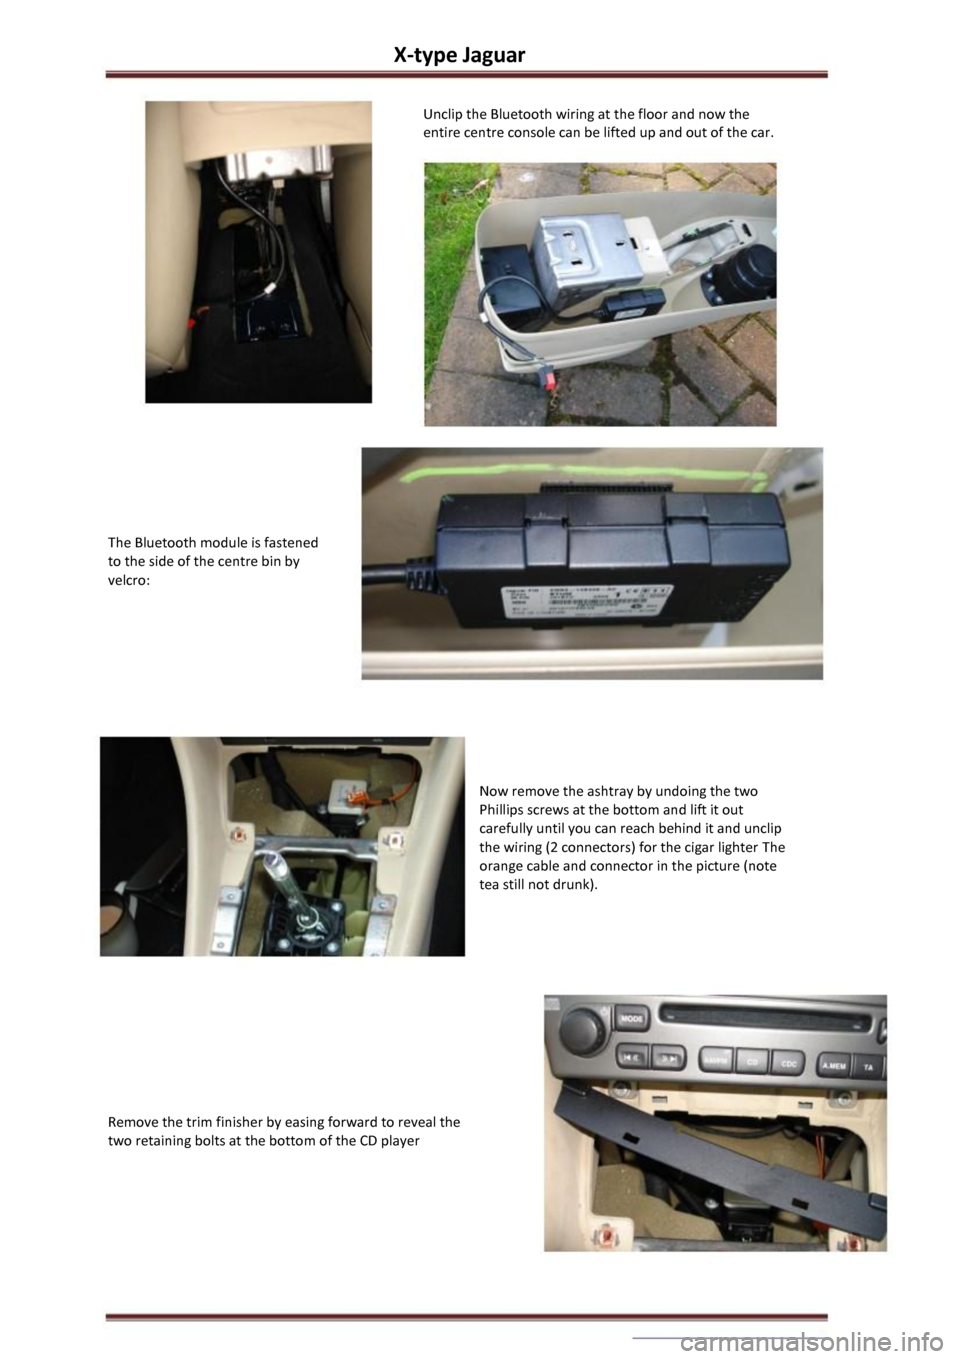 JAGUAR X TYPE 2002 1.G Owners Manual, Page 4